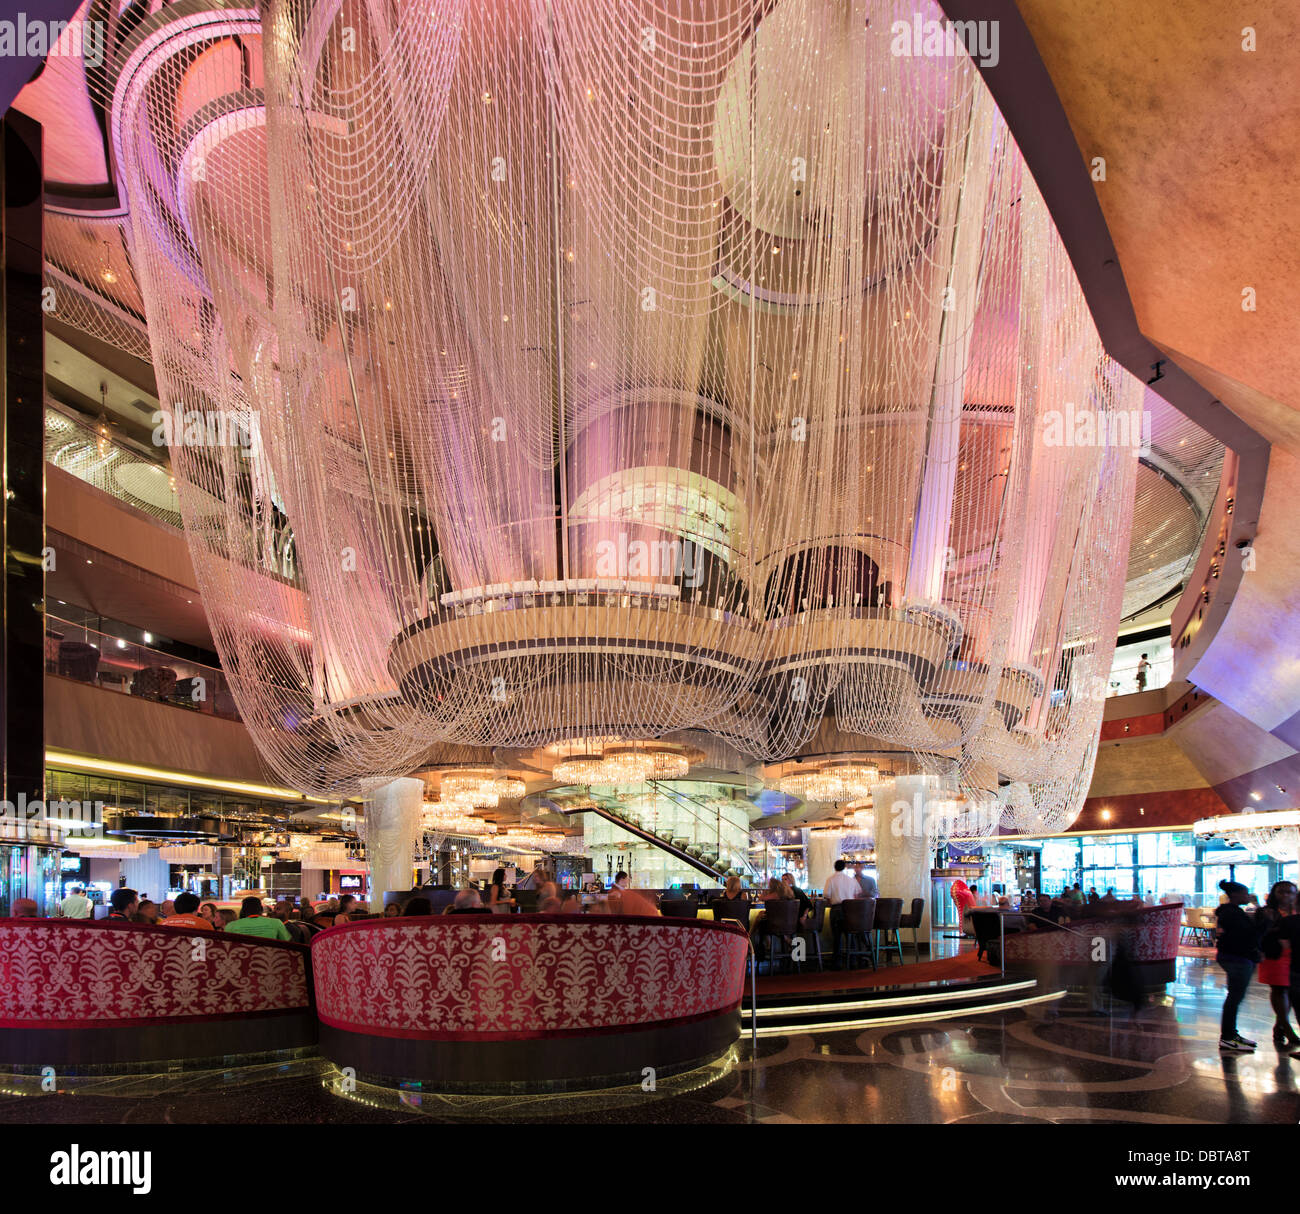 Chandelier bar at cosmopolitan hotel casino and resort city center chandelier bar at cosmopolitan hotel casino and resort city center las vegas nevada usa arubaitofo Image collections